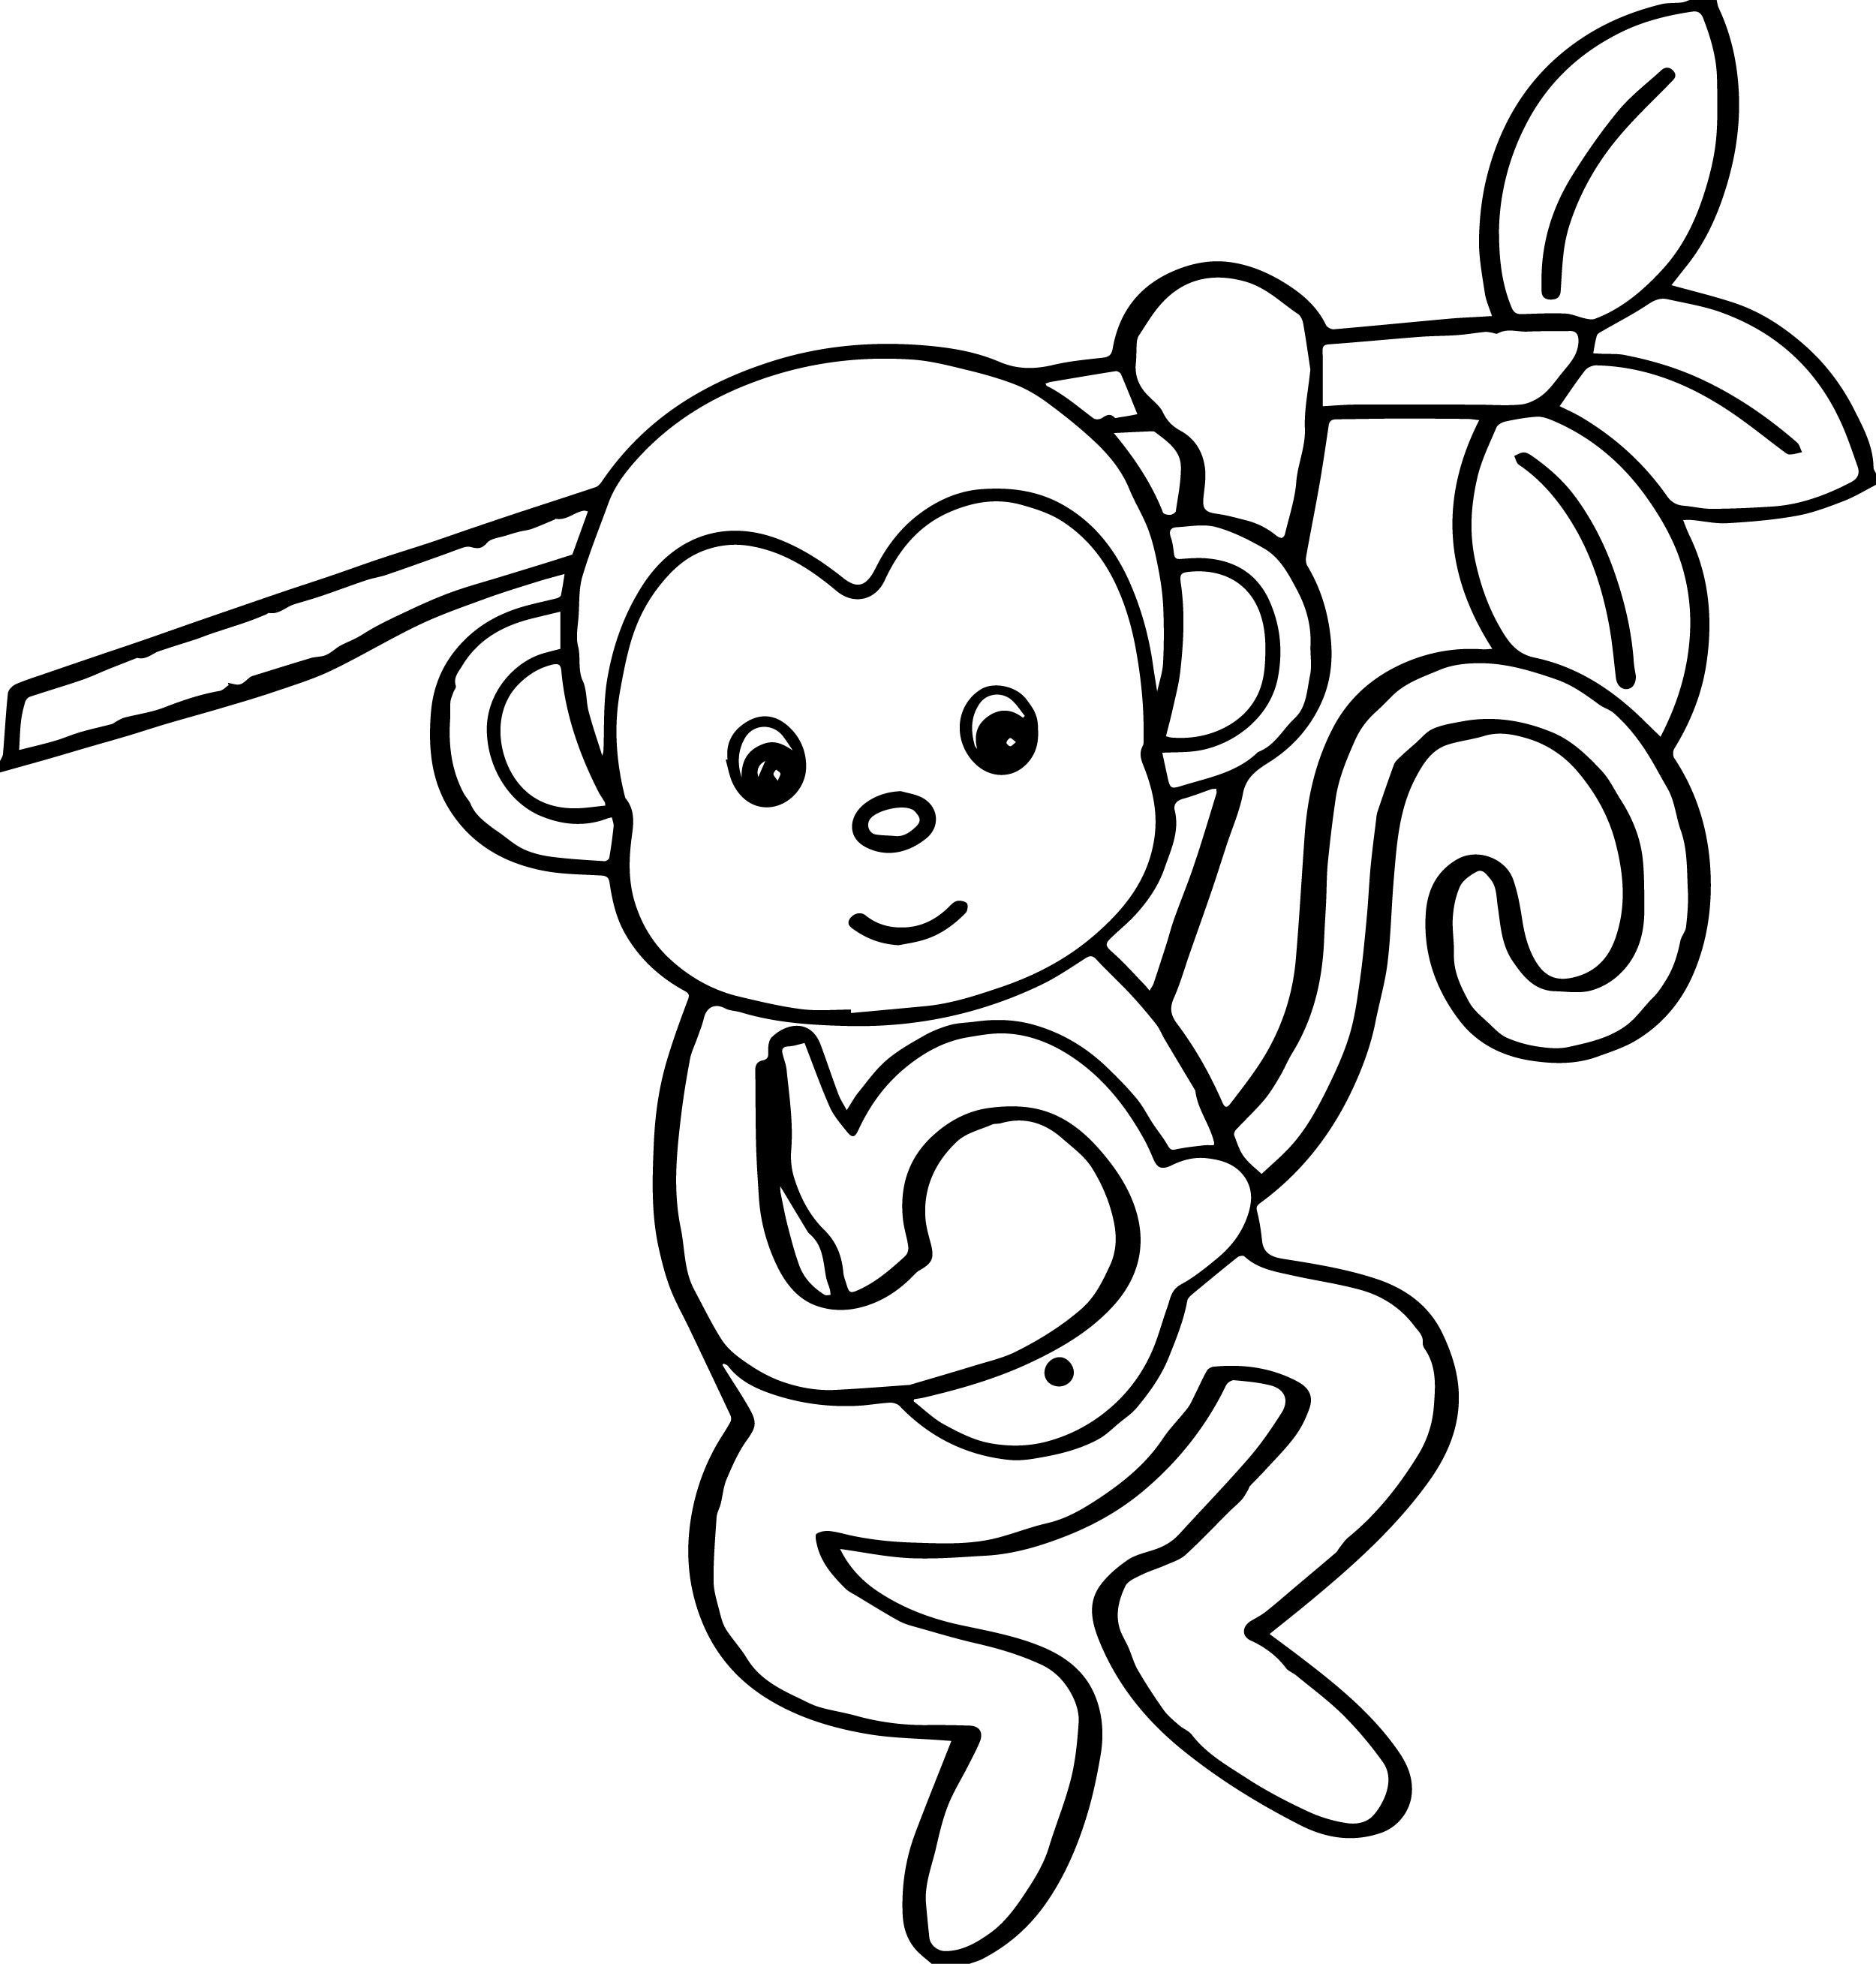 2500x2617 Coloring Page Of A Spider Monkey Free Draw To Color